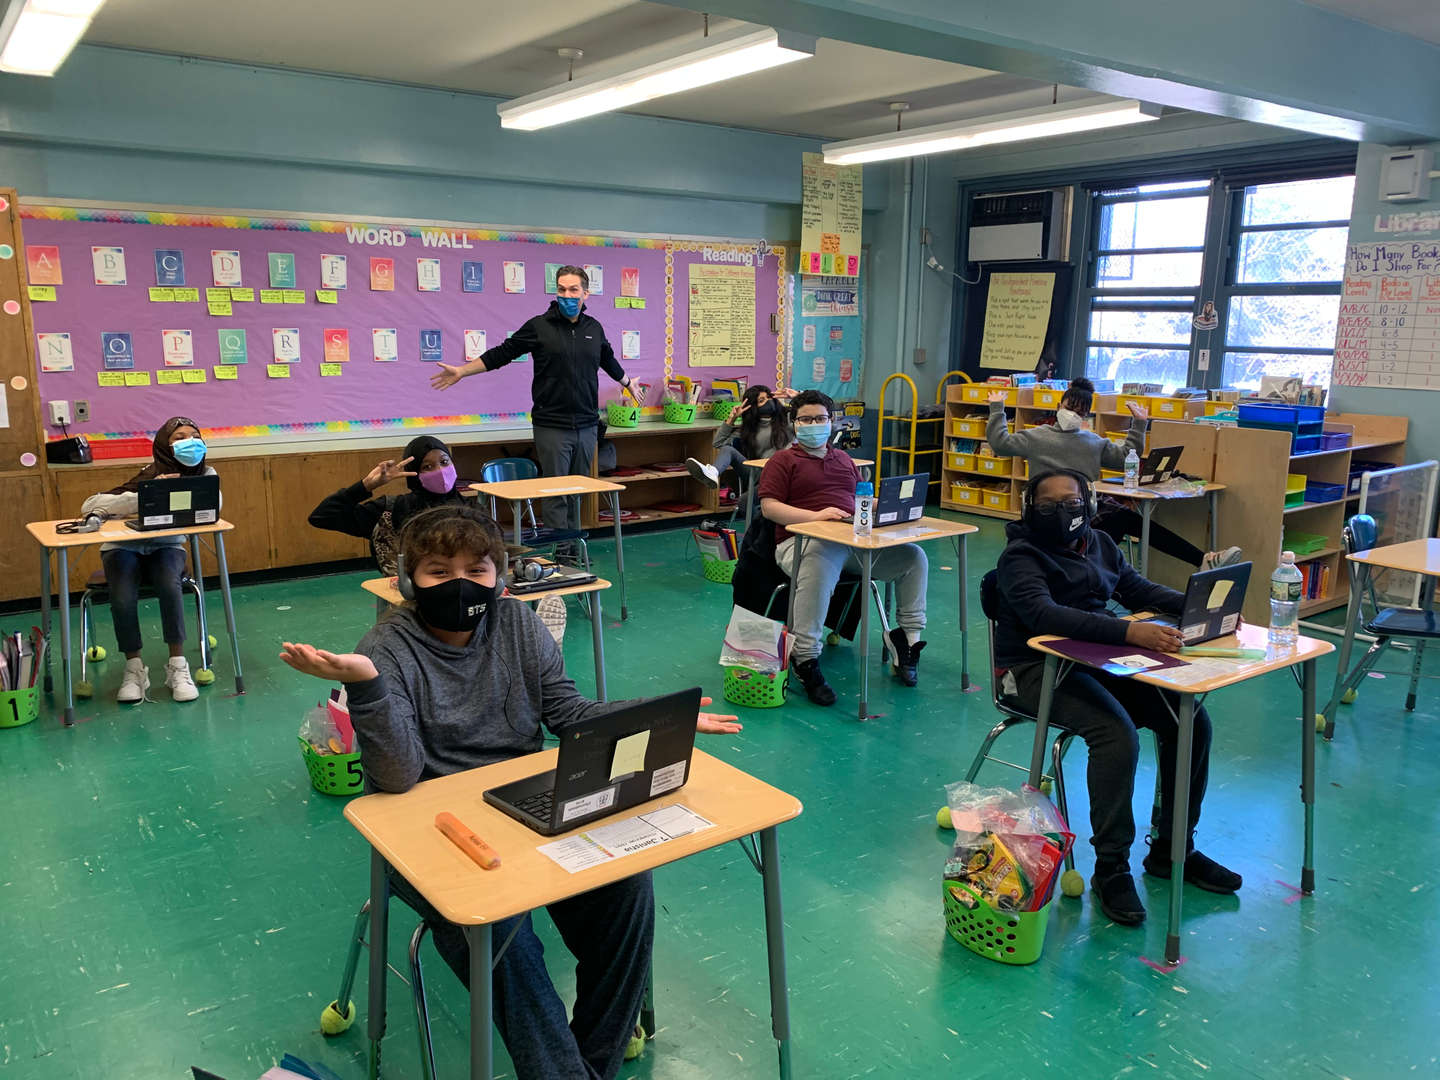 Students sitting at their desks with masks on during class